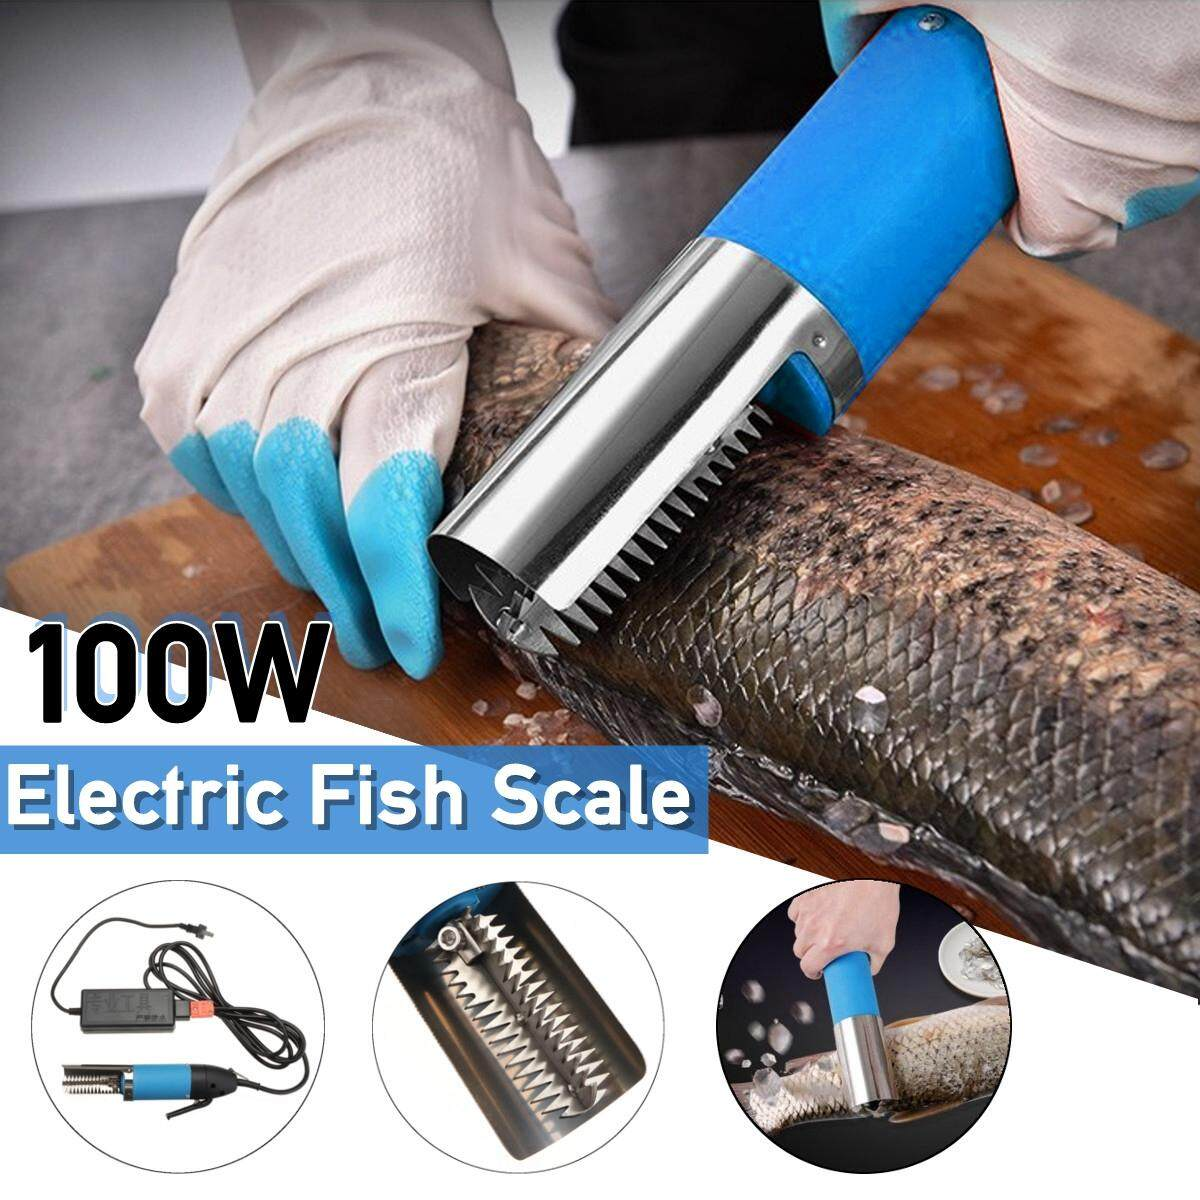 【free Shipping + Flash Deal】100w Waterproof Electric Fish Scale Scaler Remover Scraper Kni-Fe Cleaner Peeler By Freebang.